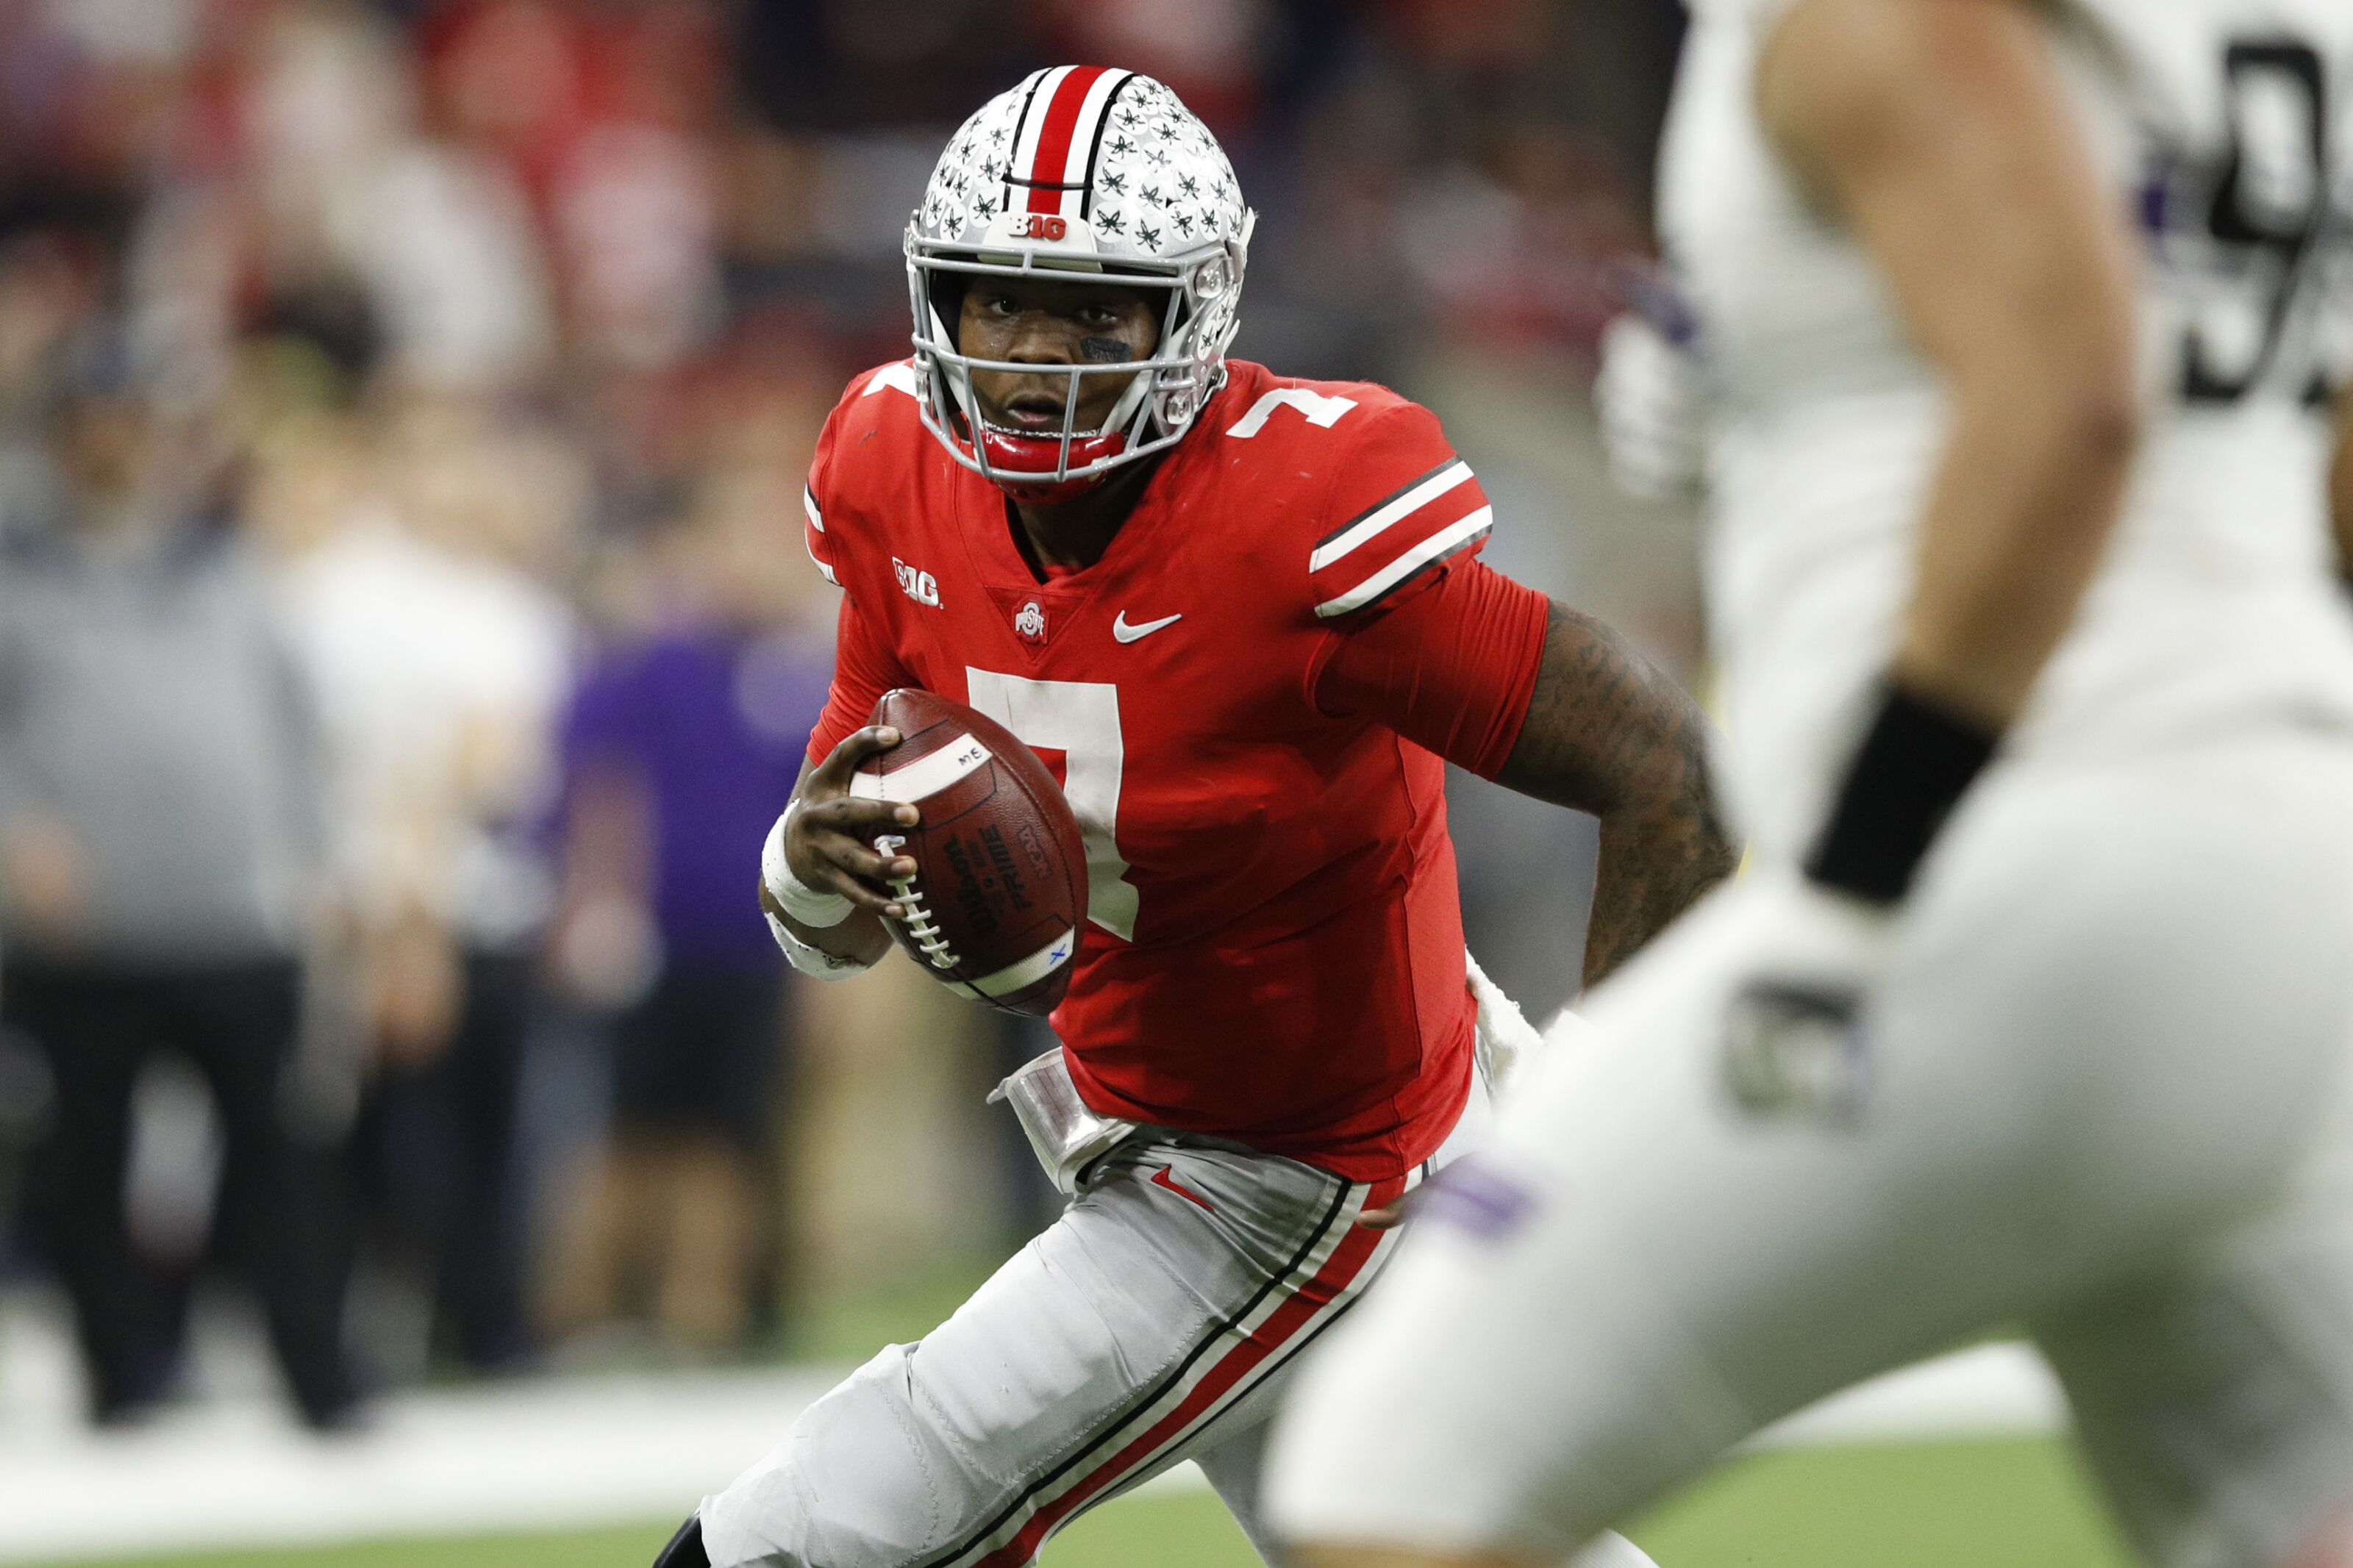 Dwayne Haskins says Miami Dolphins have shown a lot of interest